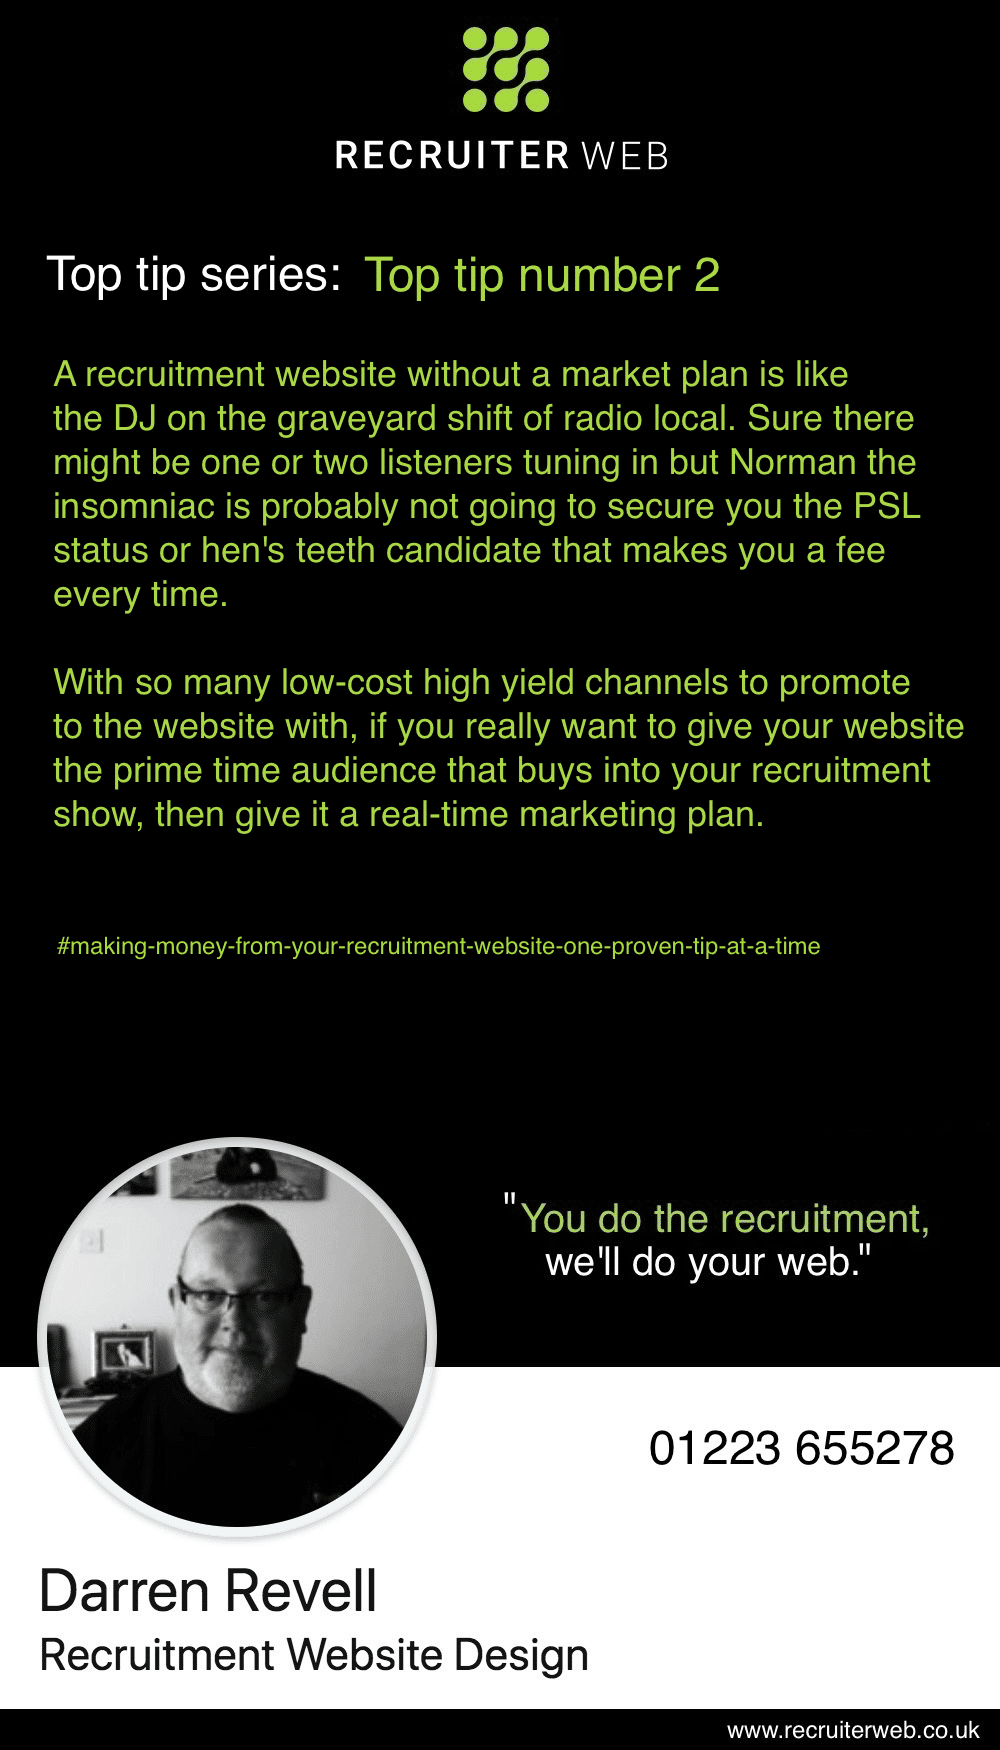 Recruitment website design tip